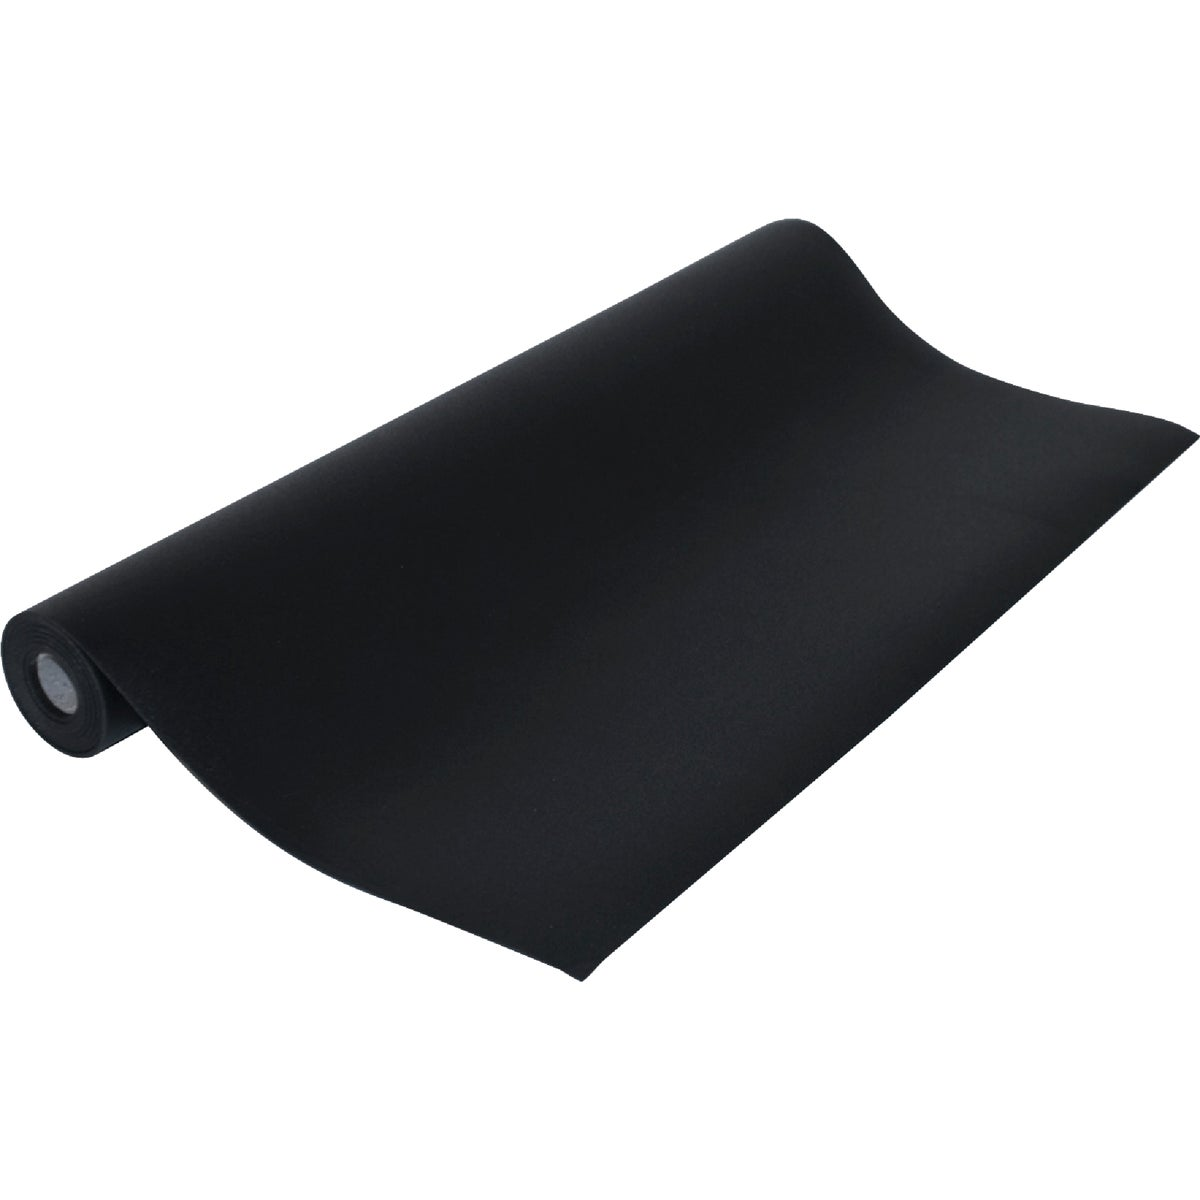 "18""X4' BLACK GRIP LINER - 04F-C6U51-01 by Kittrich Corp"